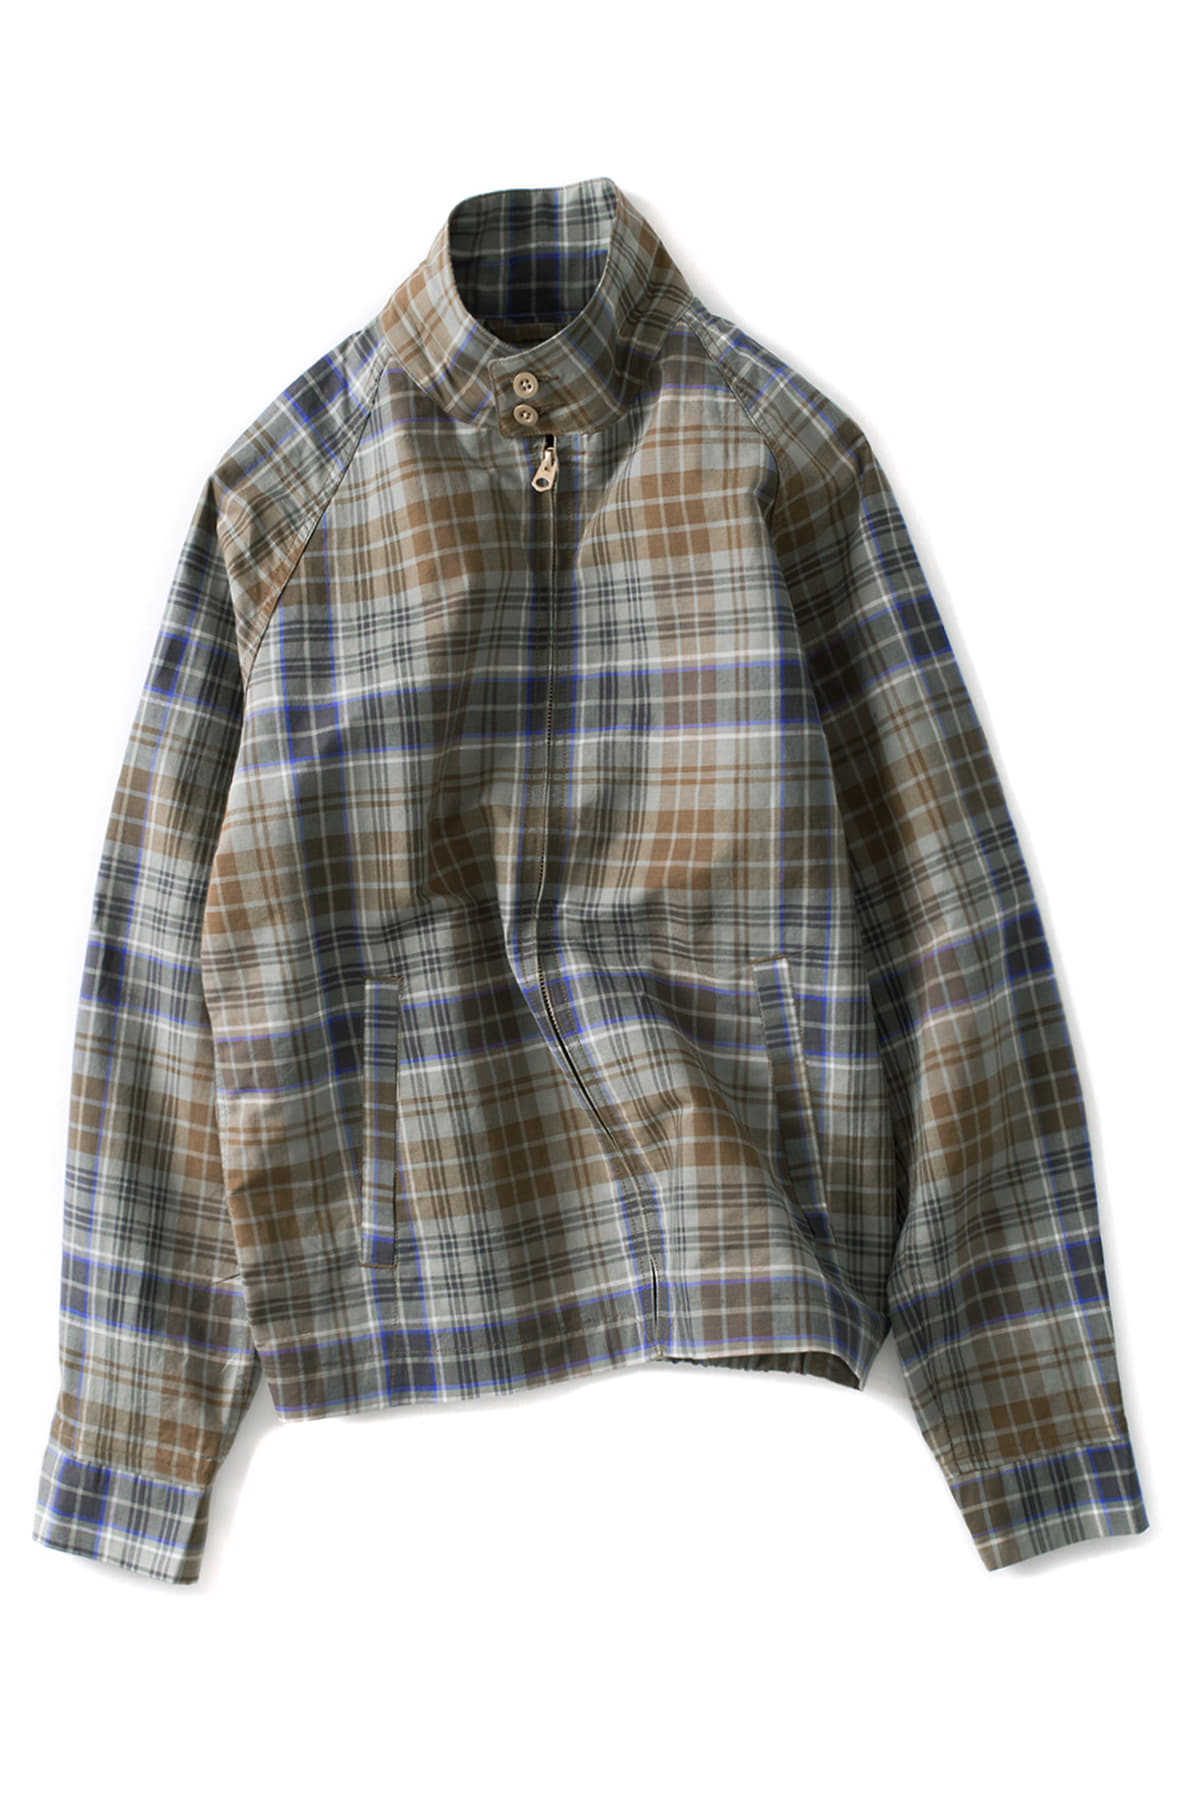 Scye : Cotton And Linen Plaid Harrington Jacket (Blue)